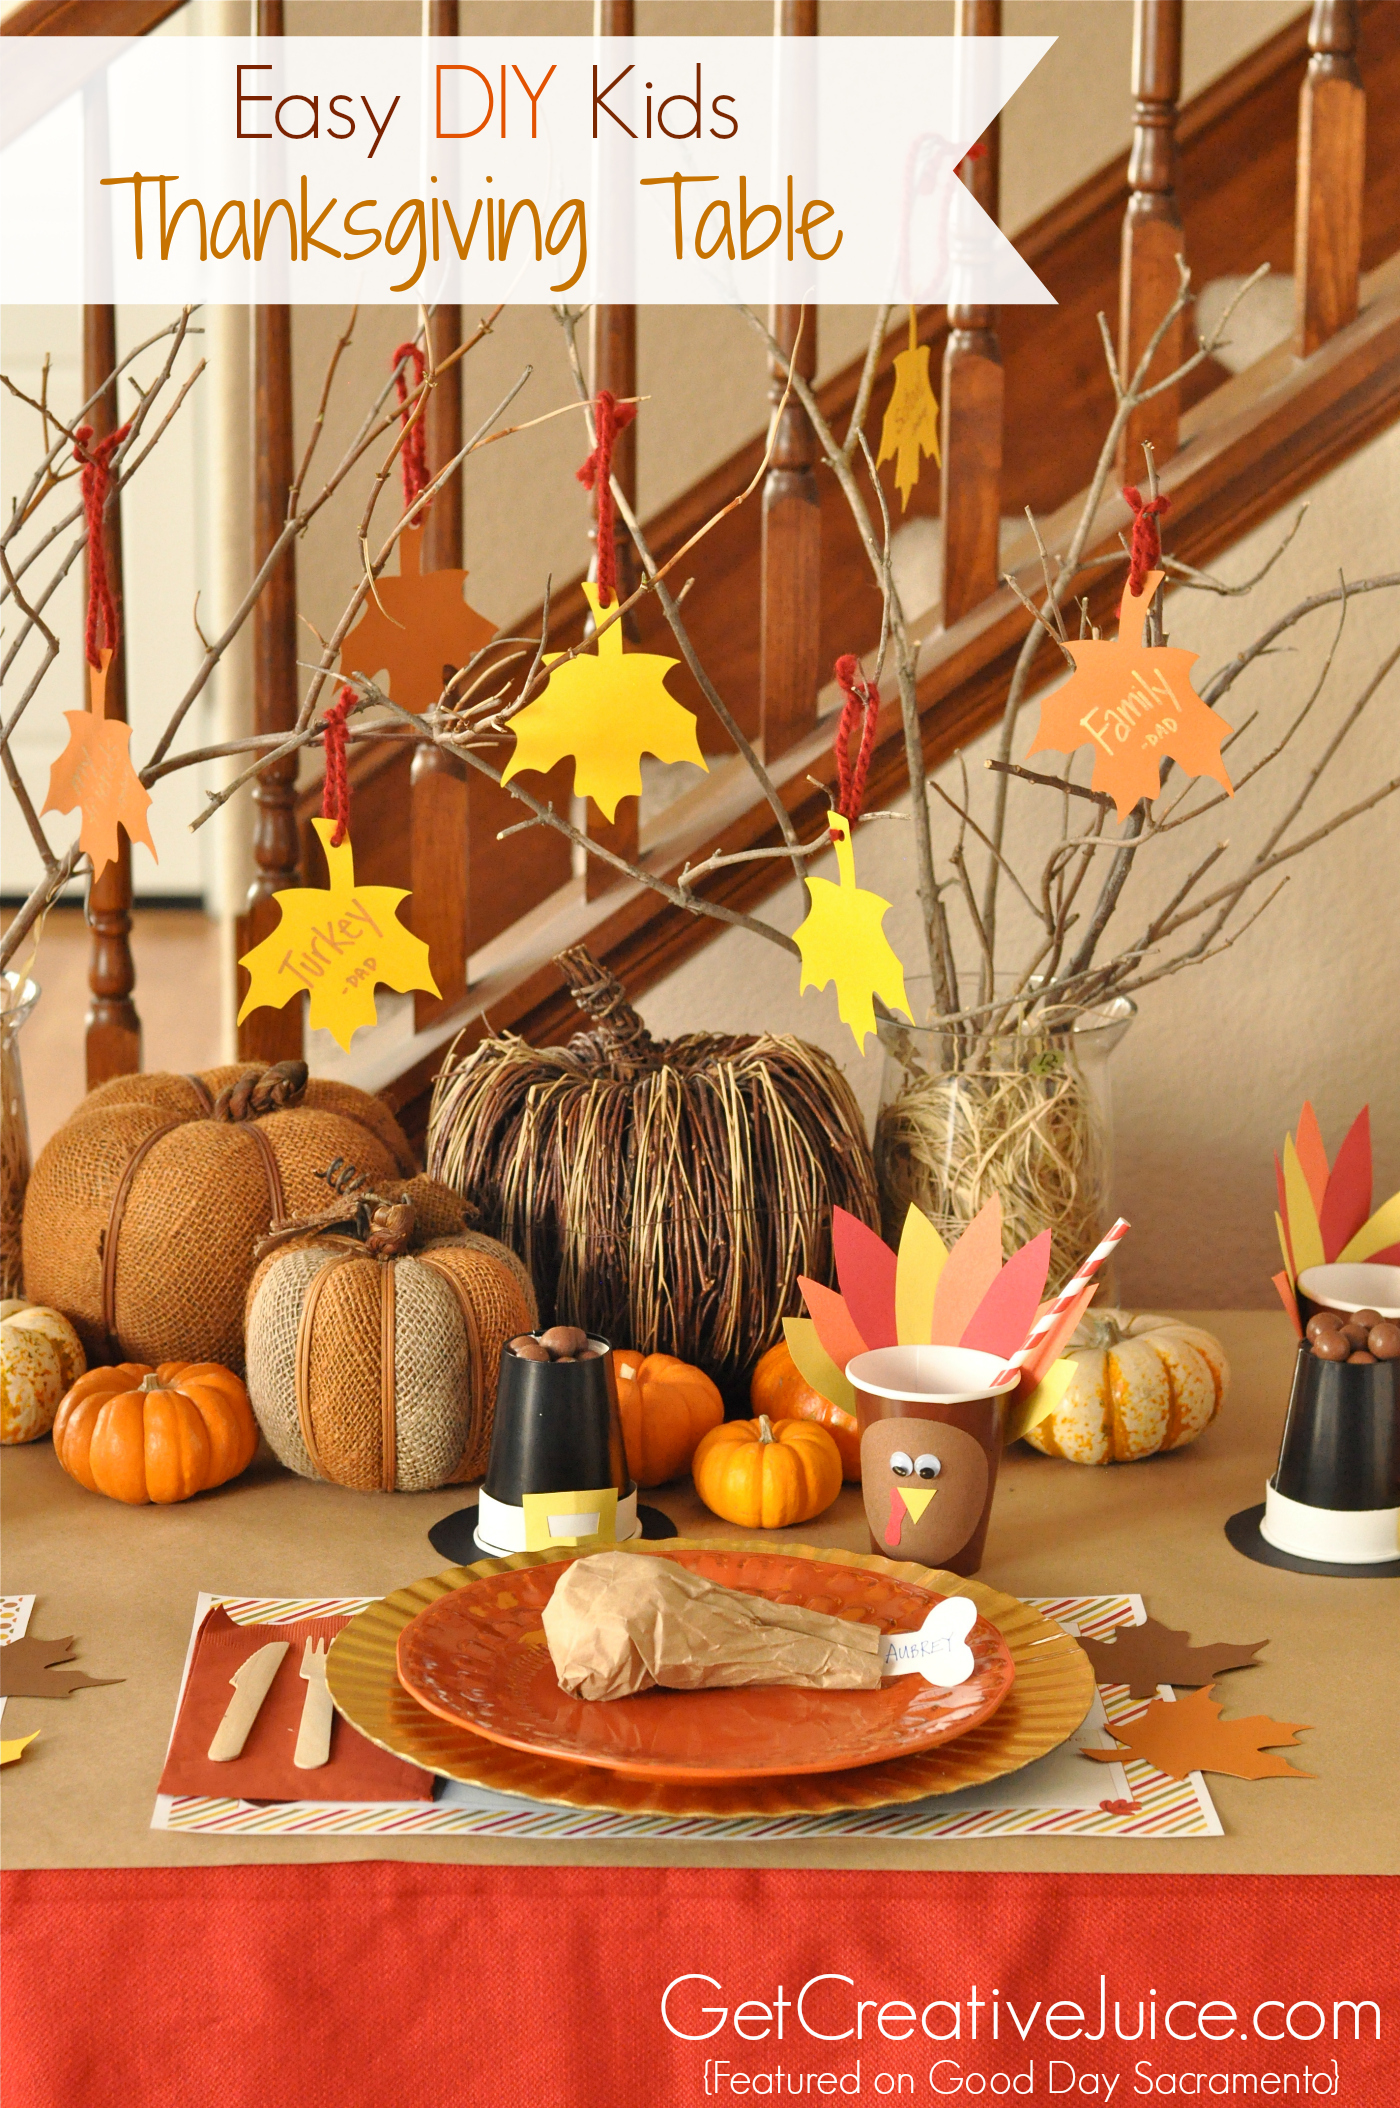 easy diy kids thanksgiving table ideas creative juice